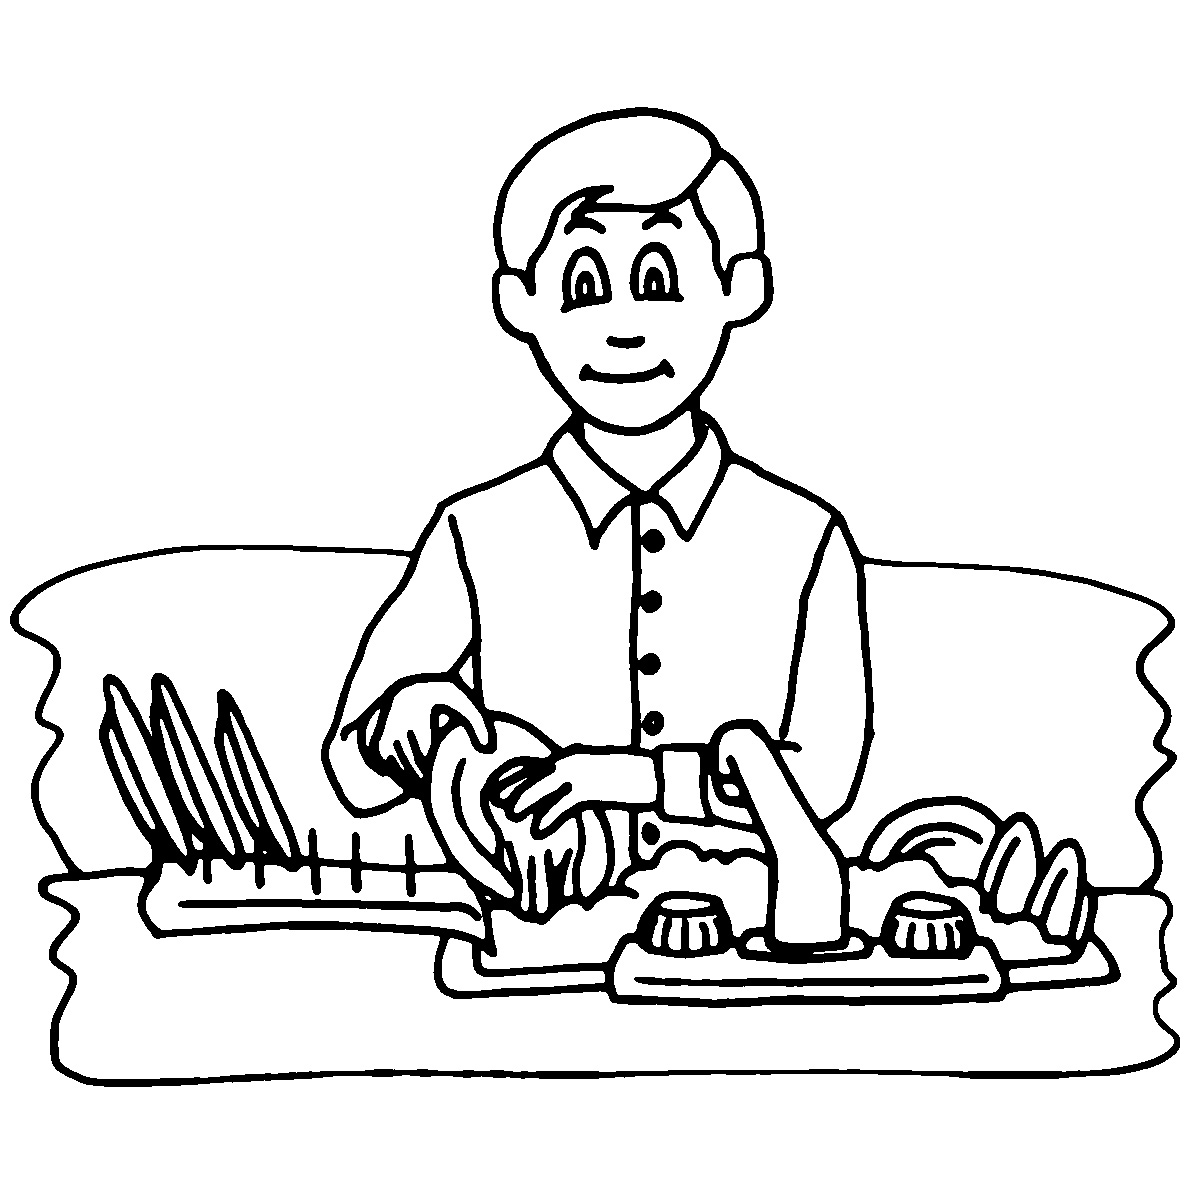 Chores clipart black and white.  collection of kids